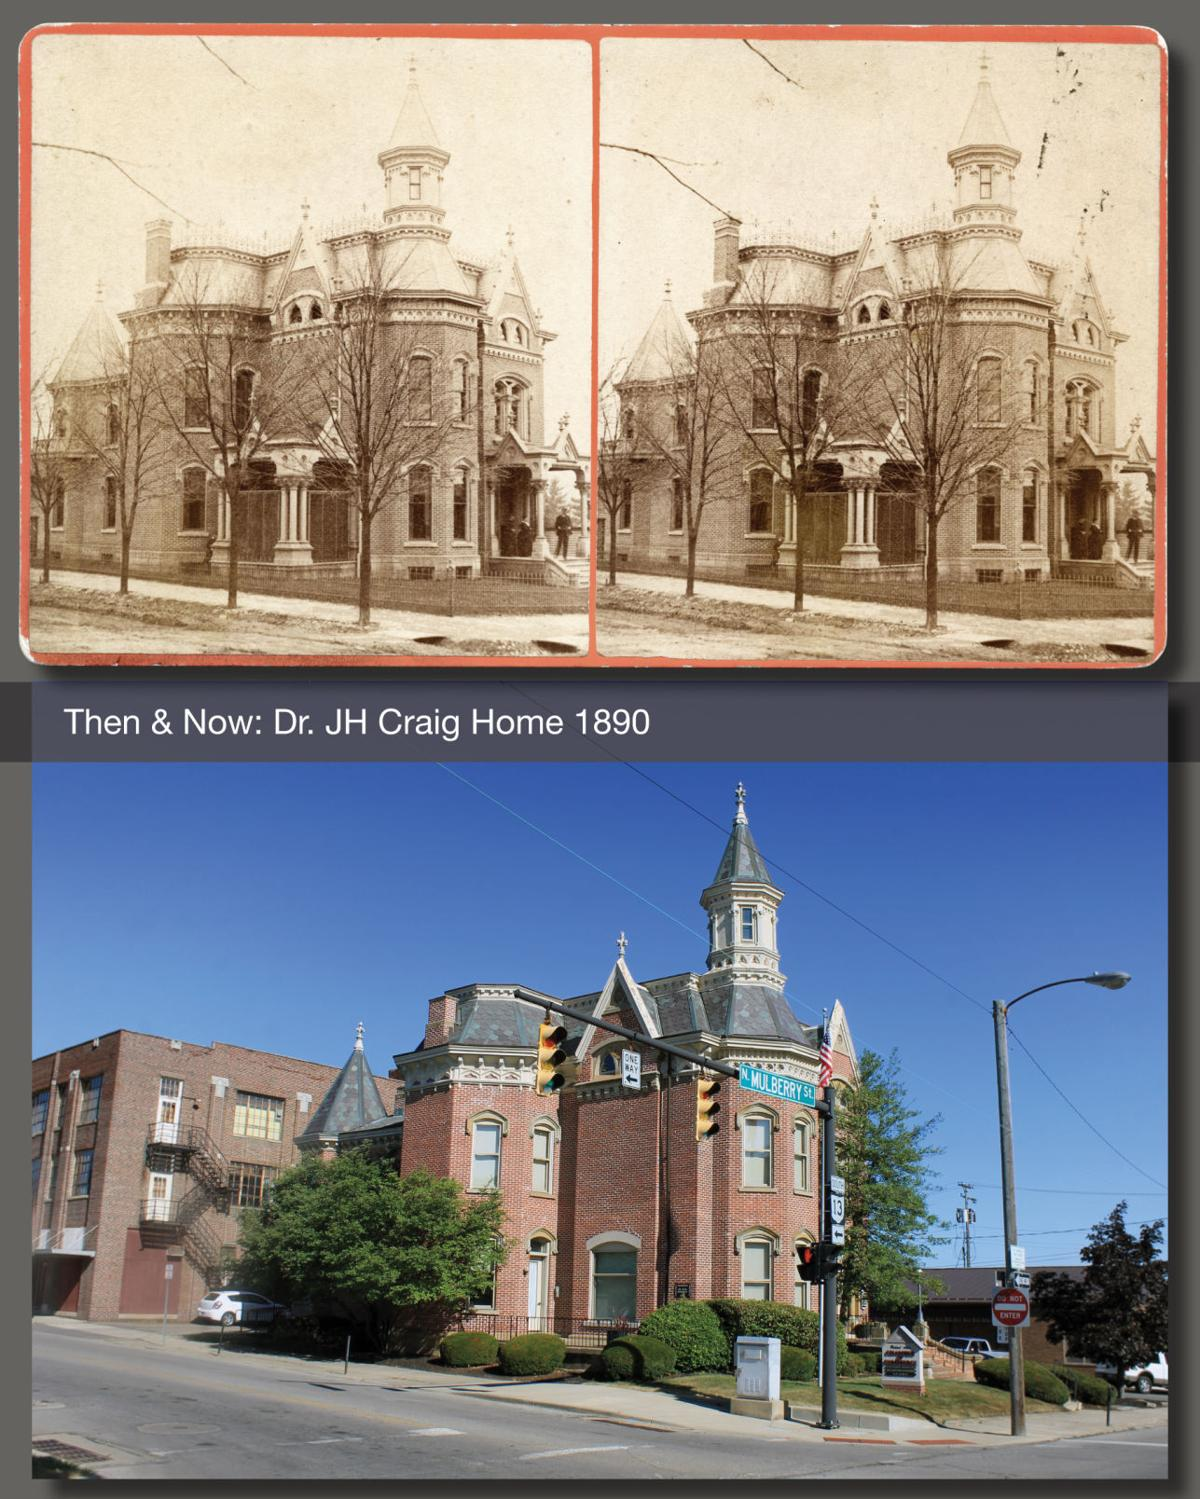 Then & Now: Dr Craig's home